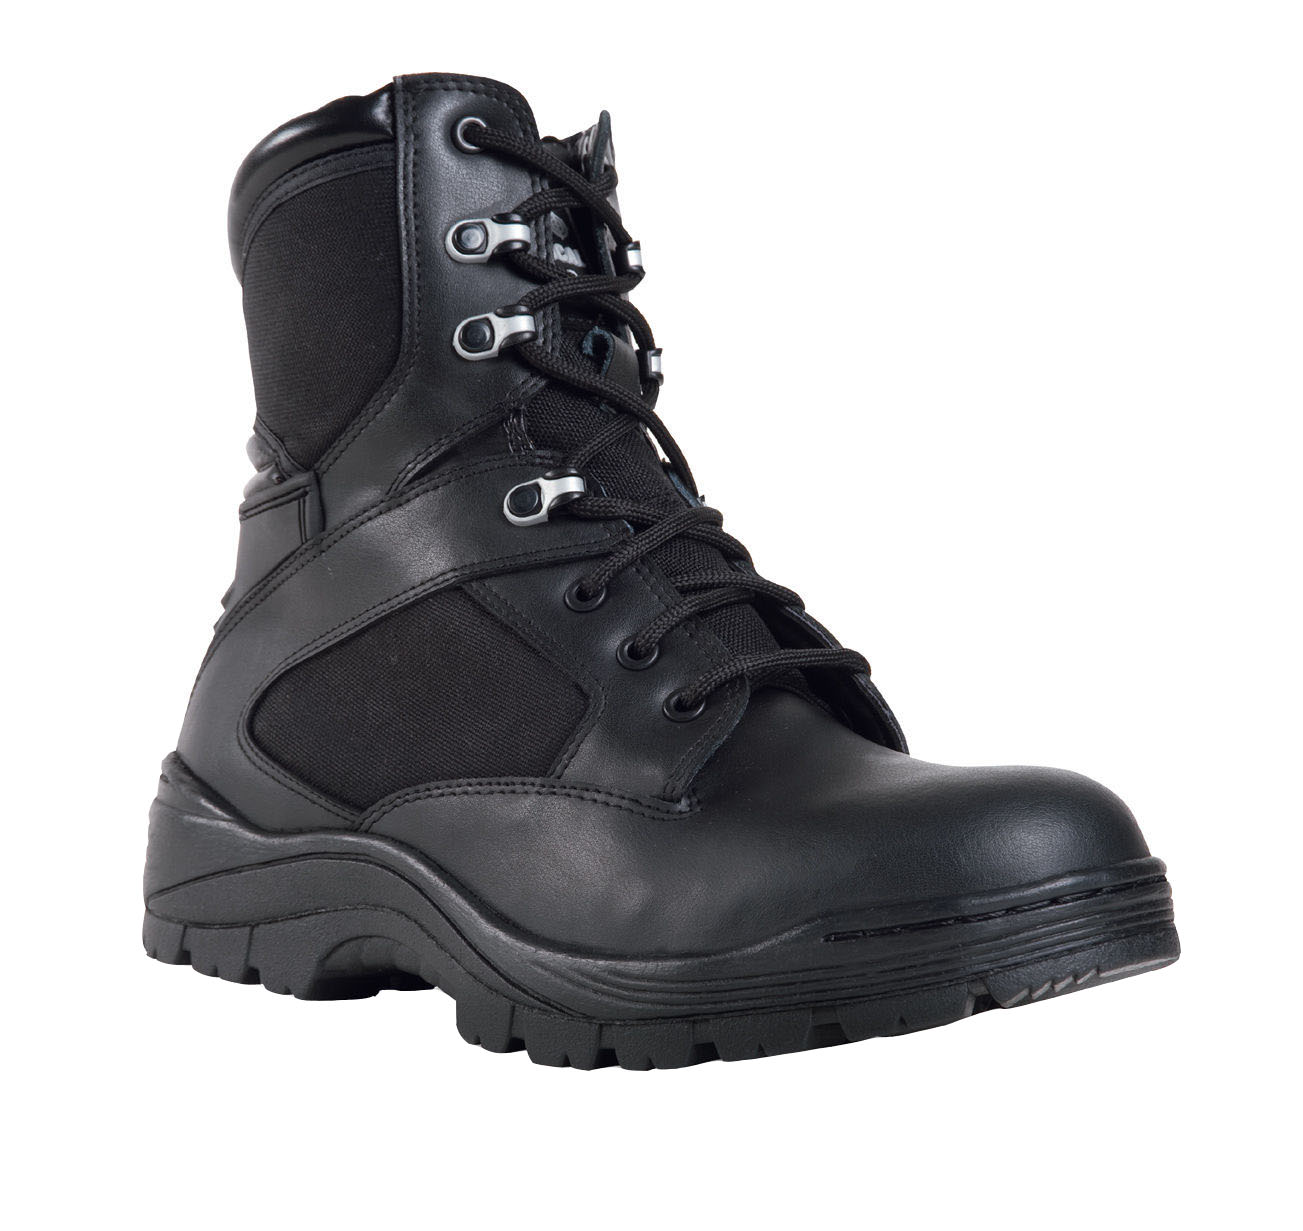 SixKa Men's Speed-Tac Tactical Boot 9 Inch